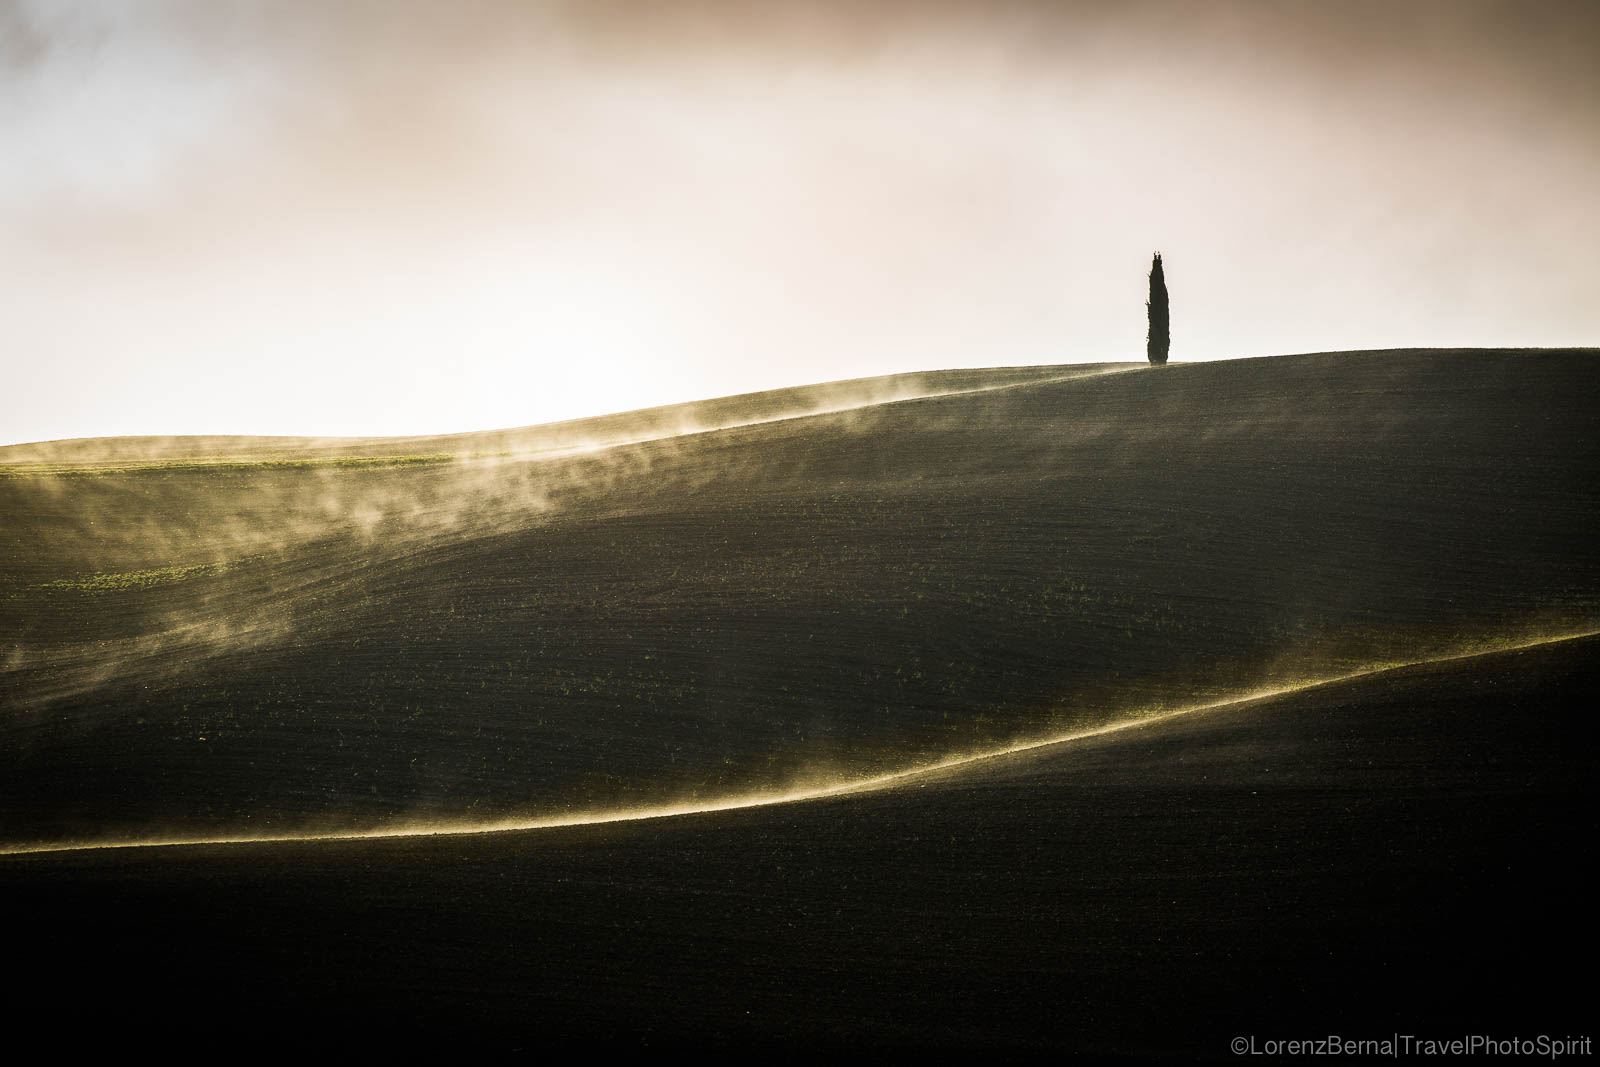 Lonely Cypress tree, between lights and shadows - A Lorenz Berna Photography of Italy